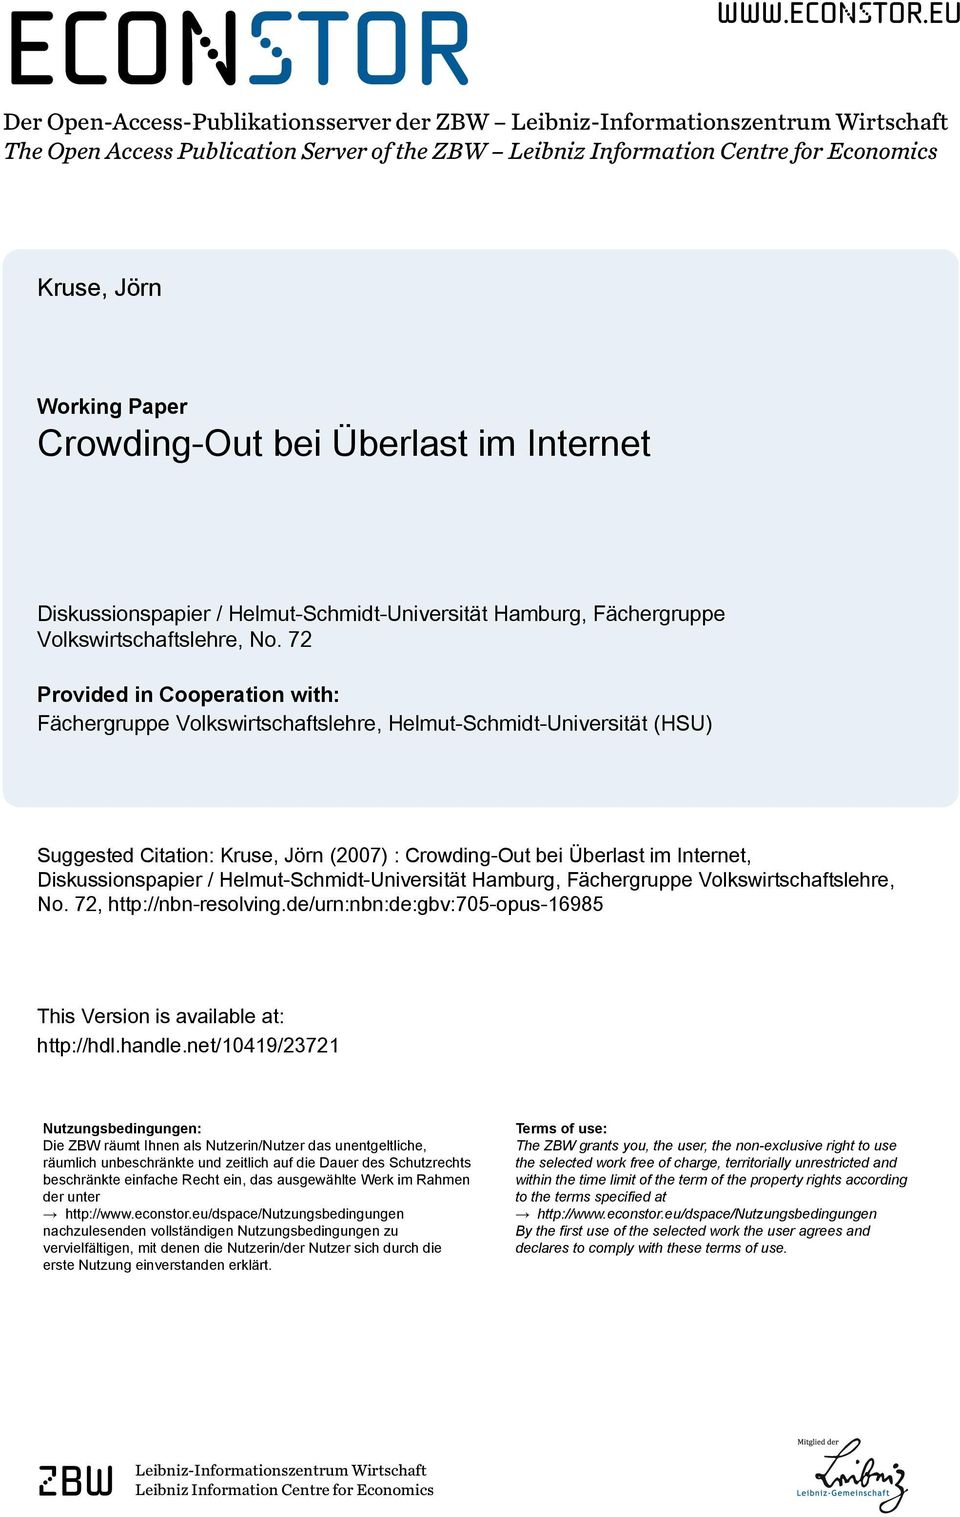 eu Der Open-Access-Publikationsserver der ZBW Leibniz-Informationszentrum Wirtschaft The Open Access Publication Server of the ZBW Leibniz Information Centre for Economics Kruse, Jörn Working Paper